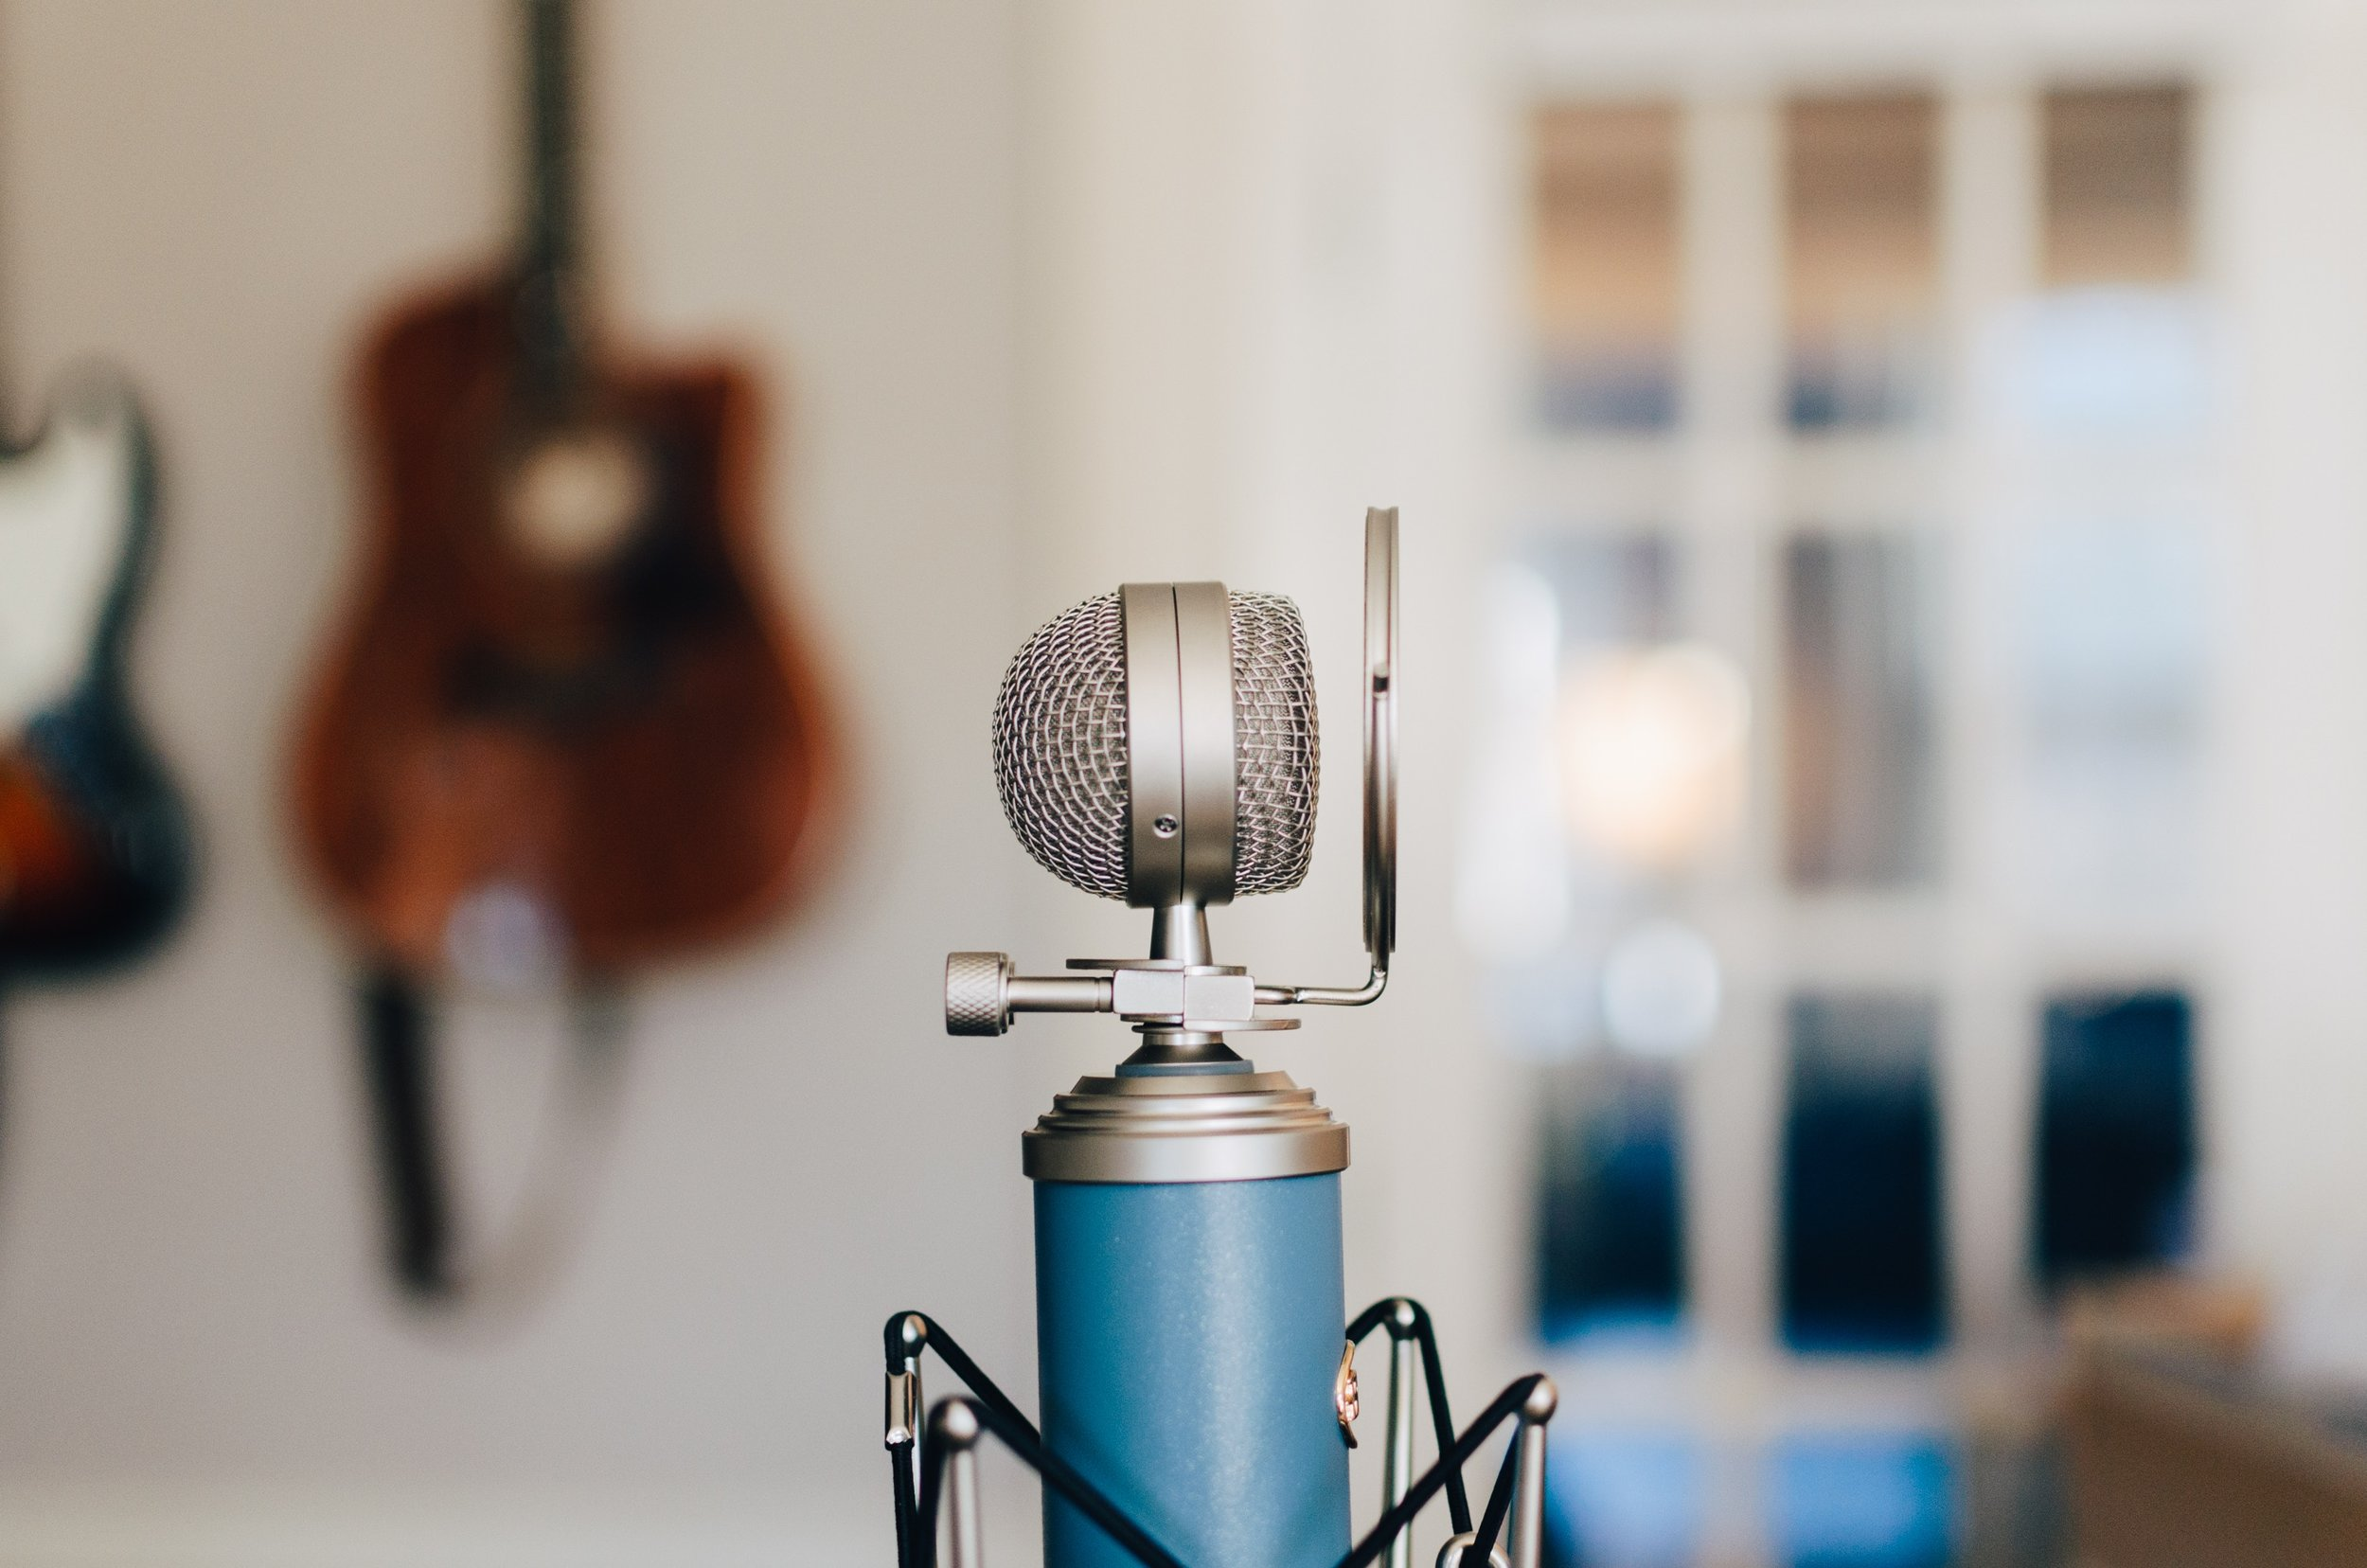 WhY start a podcast? - All this talk about podcasts and podcasting lately may have you asking,